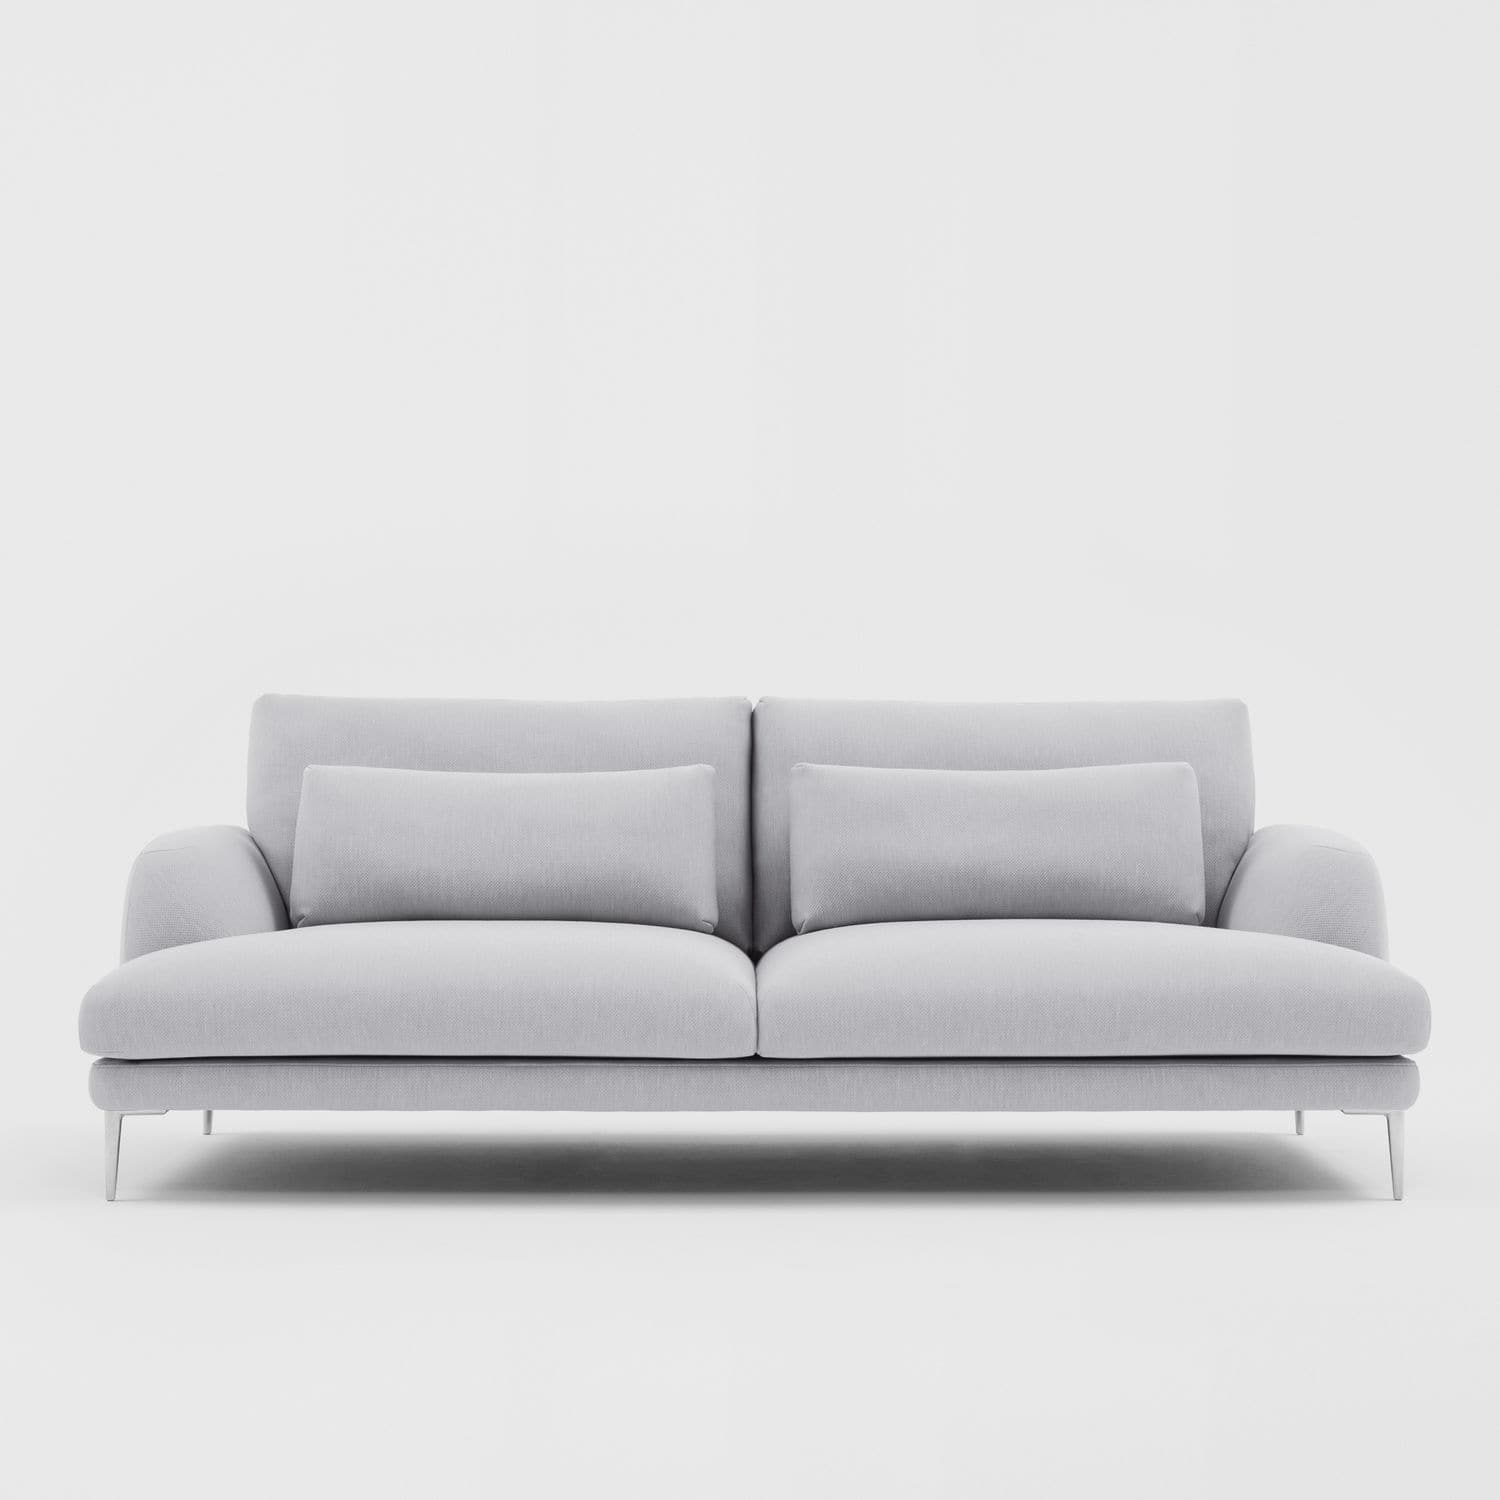 Clic By Krystian Kowalski Contemporary Sofa Fabric 2 Person White Comforty Archiexpo